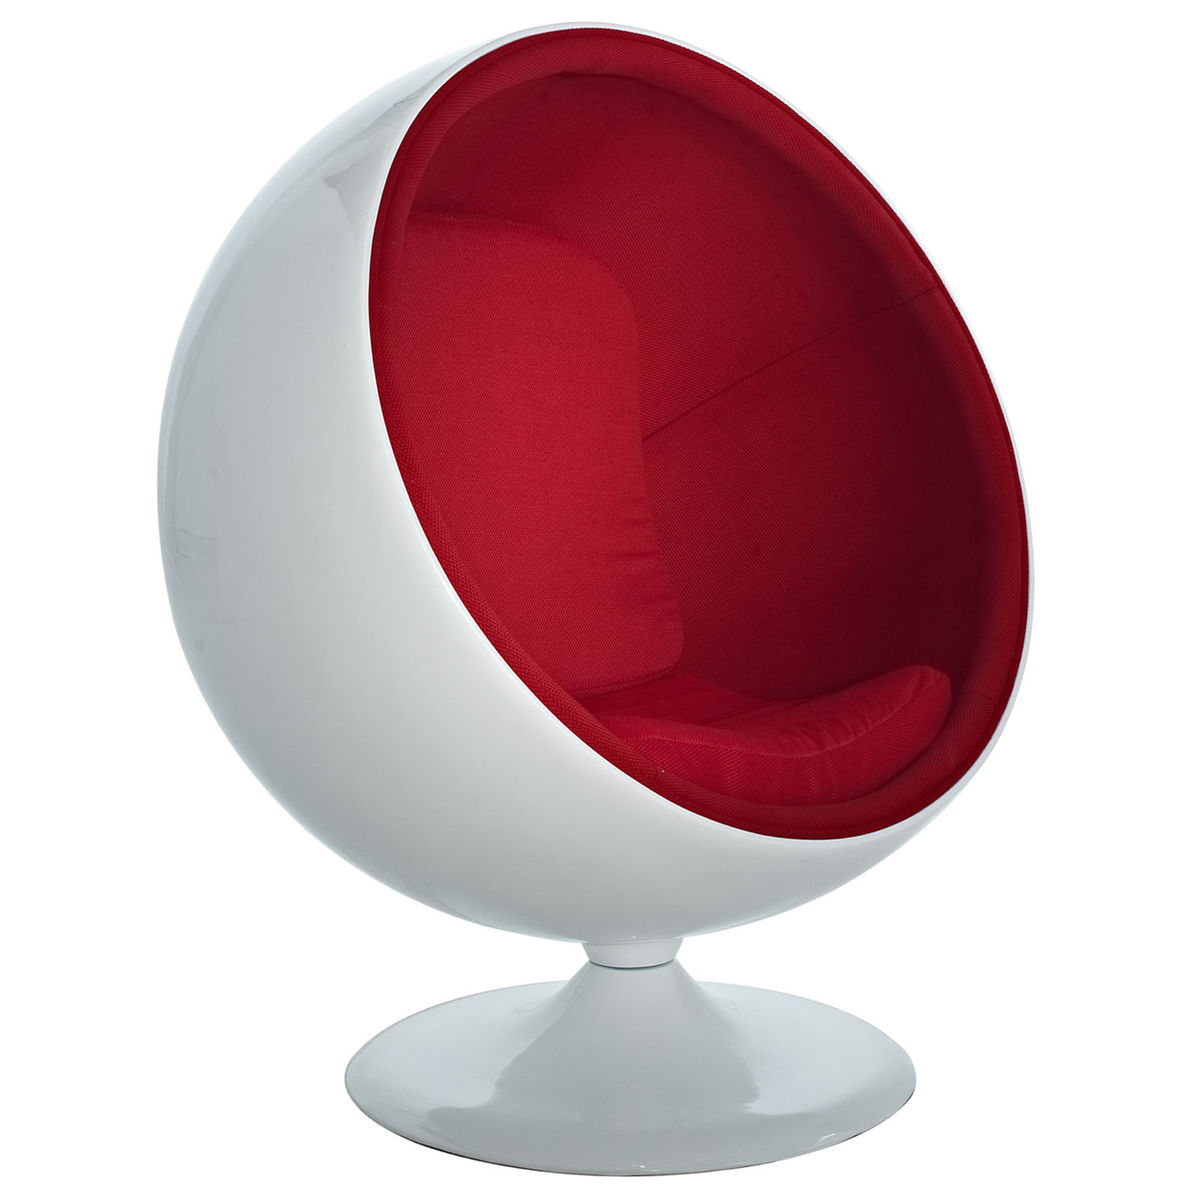 eero aarnio ball chair modern reproduction chair. Black Bedroom Furniture Sets. Home Design Ideas